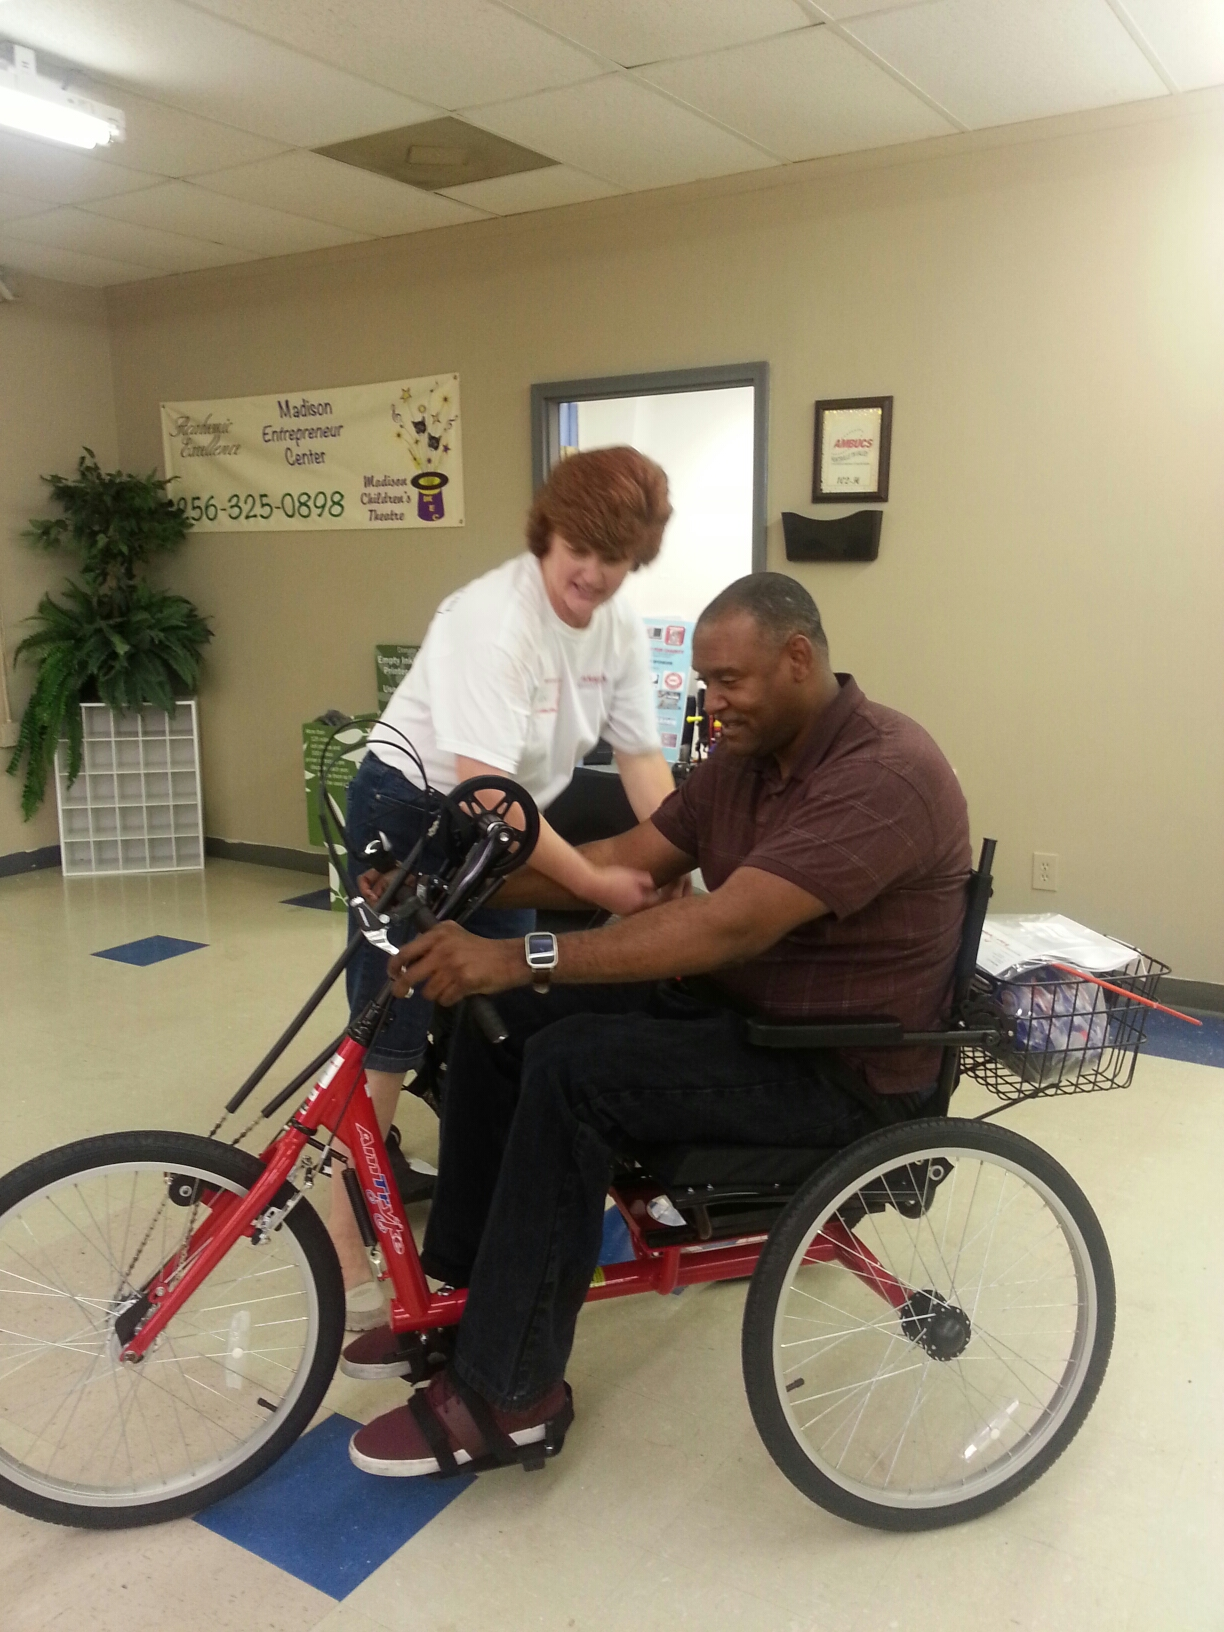 Adaptive Bikes for People with Limited Mobility